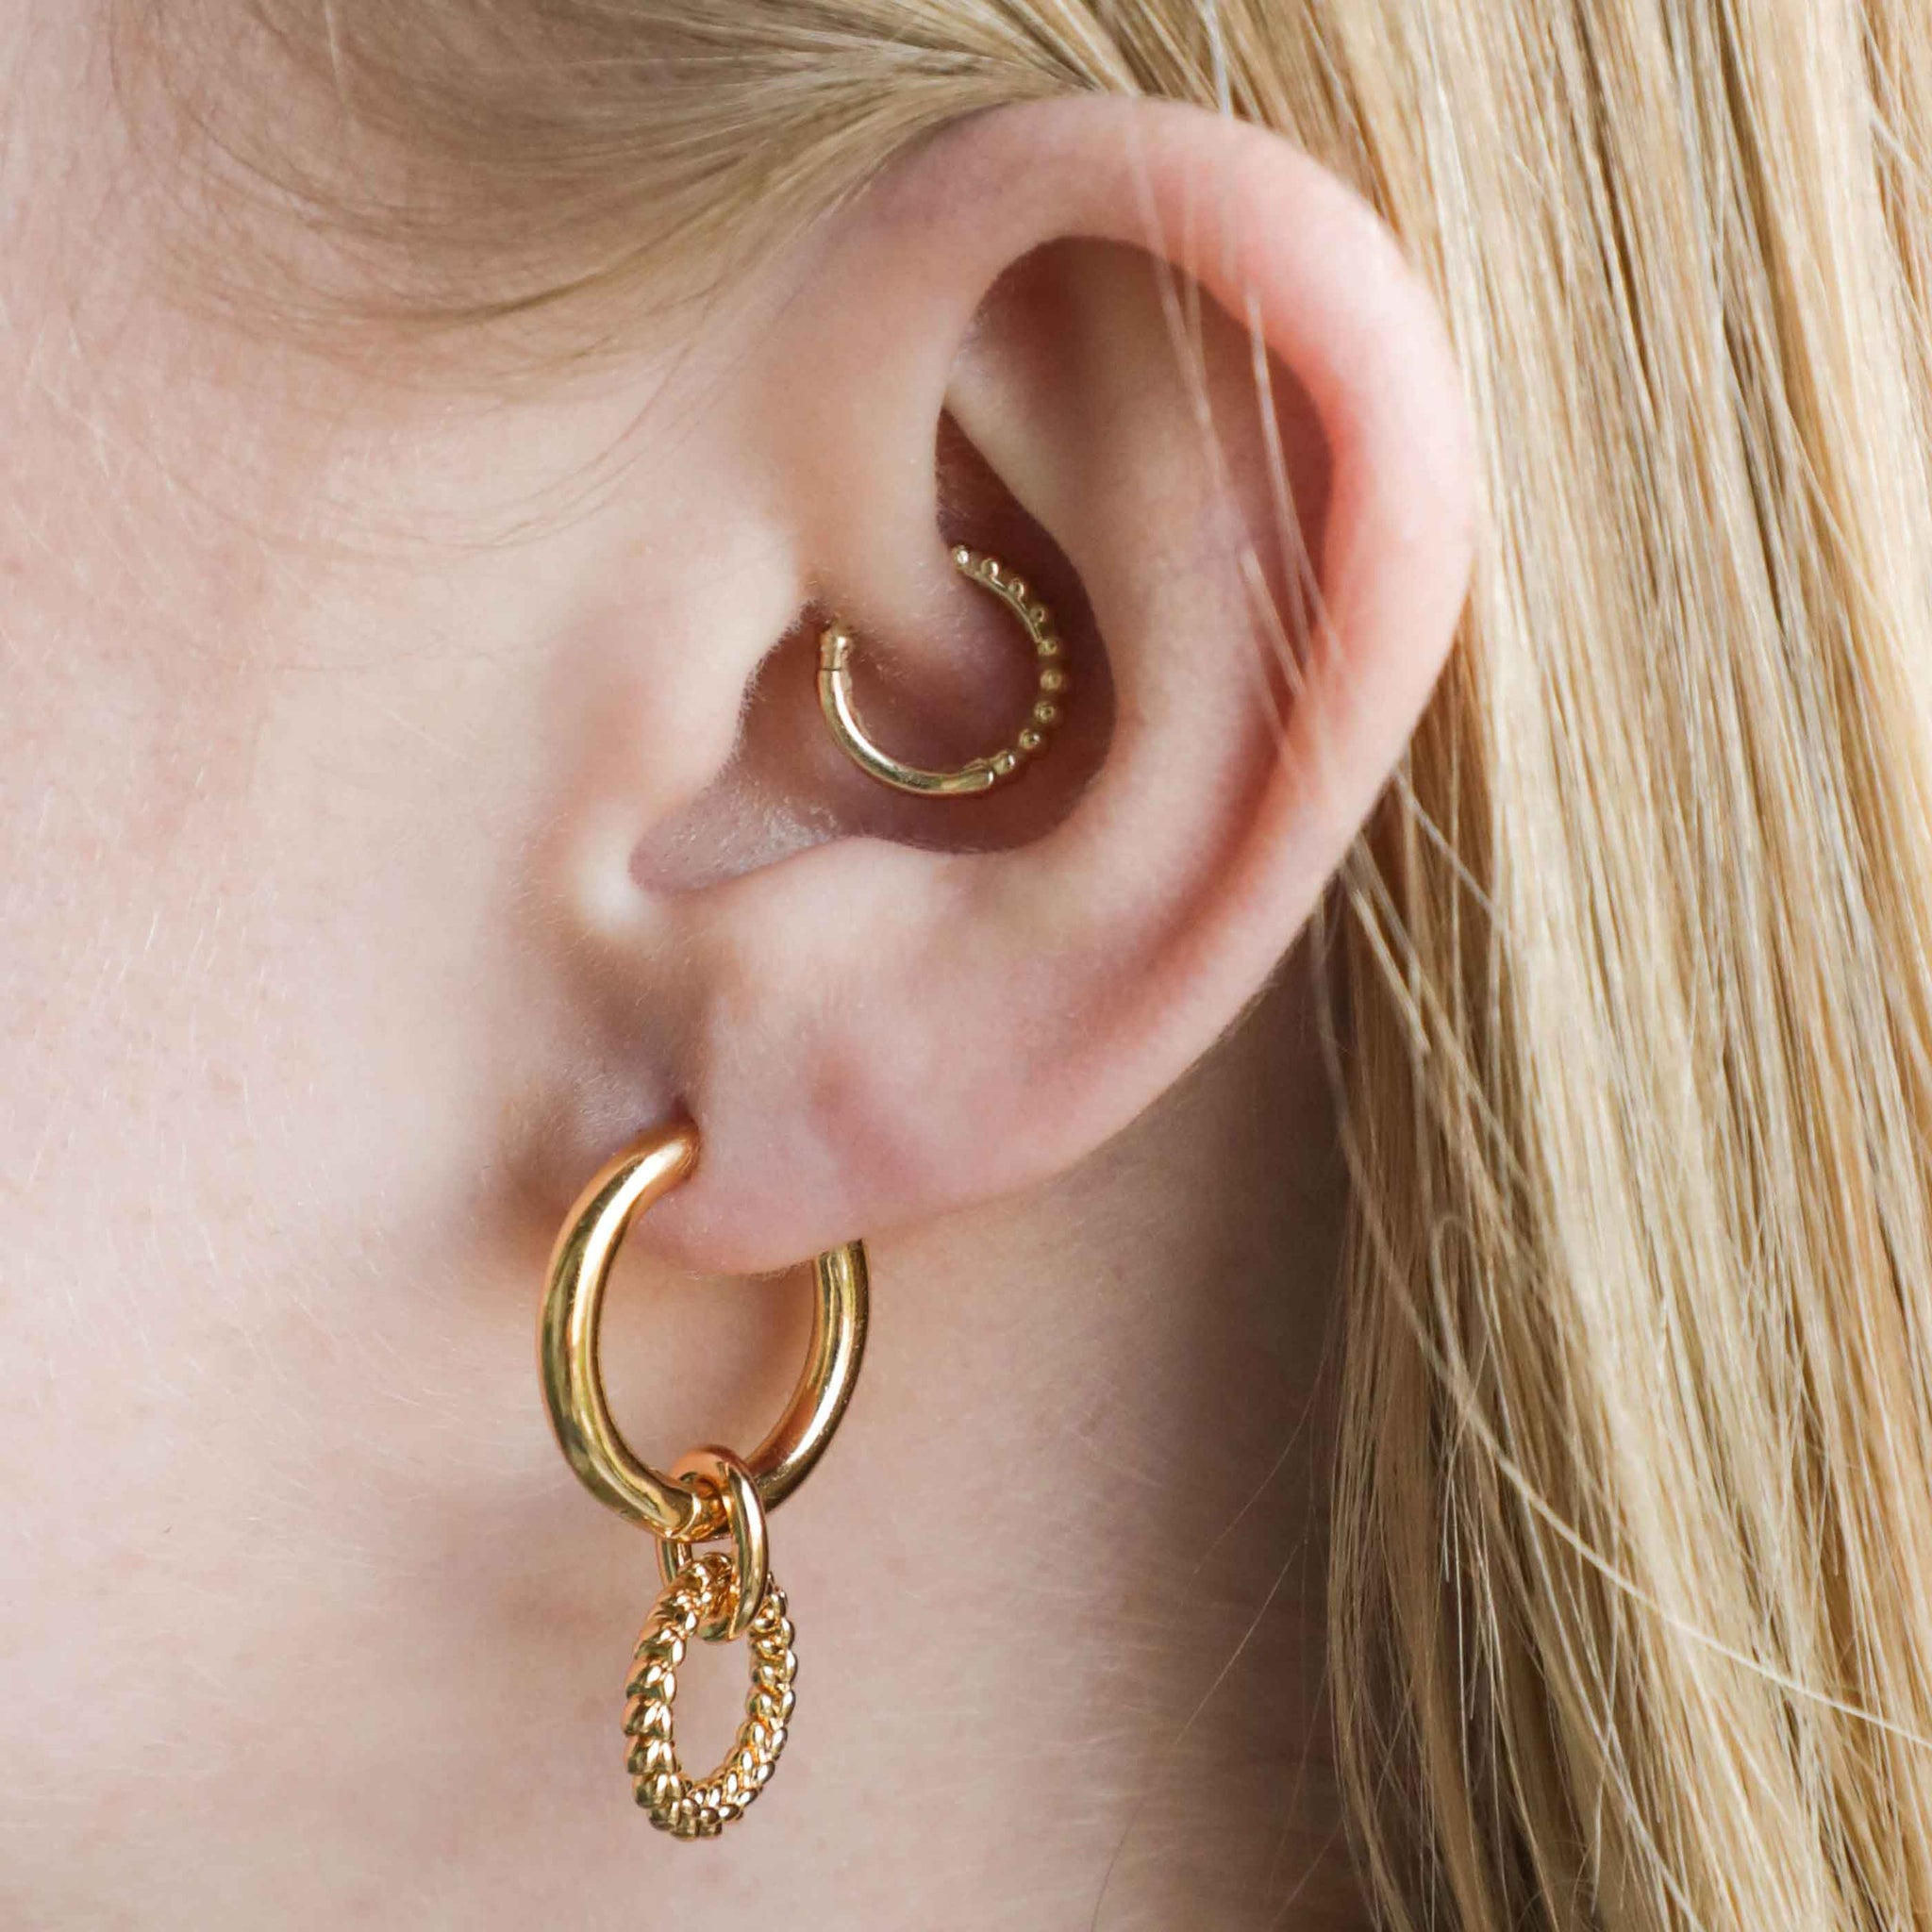 Wreath Charm Hoops in Gold worn